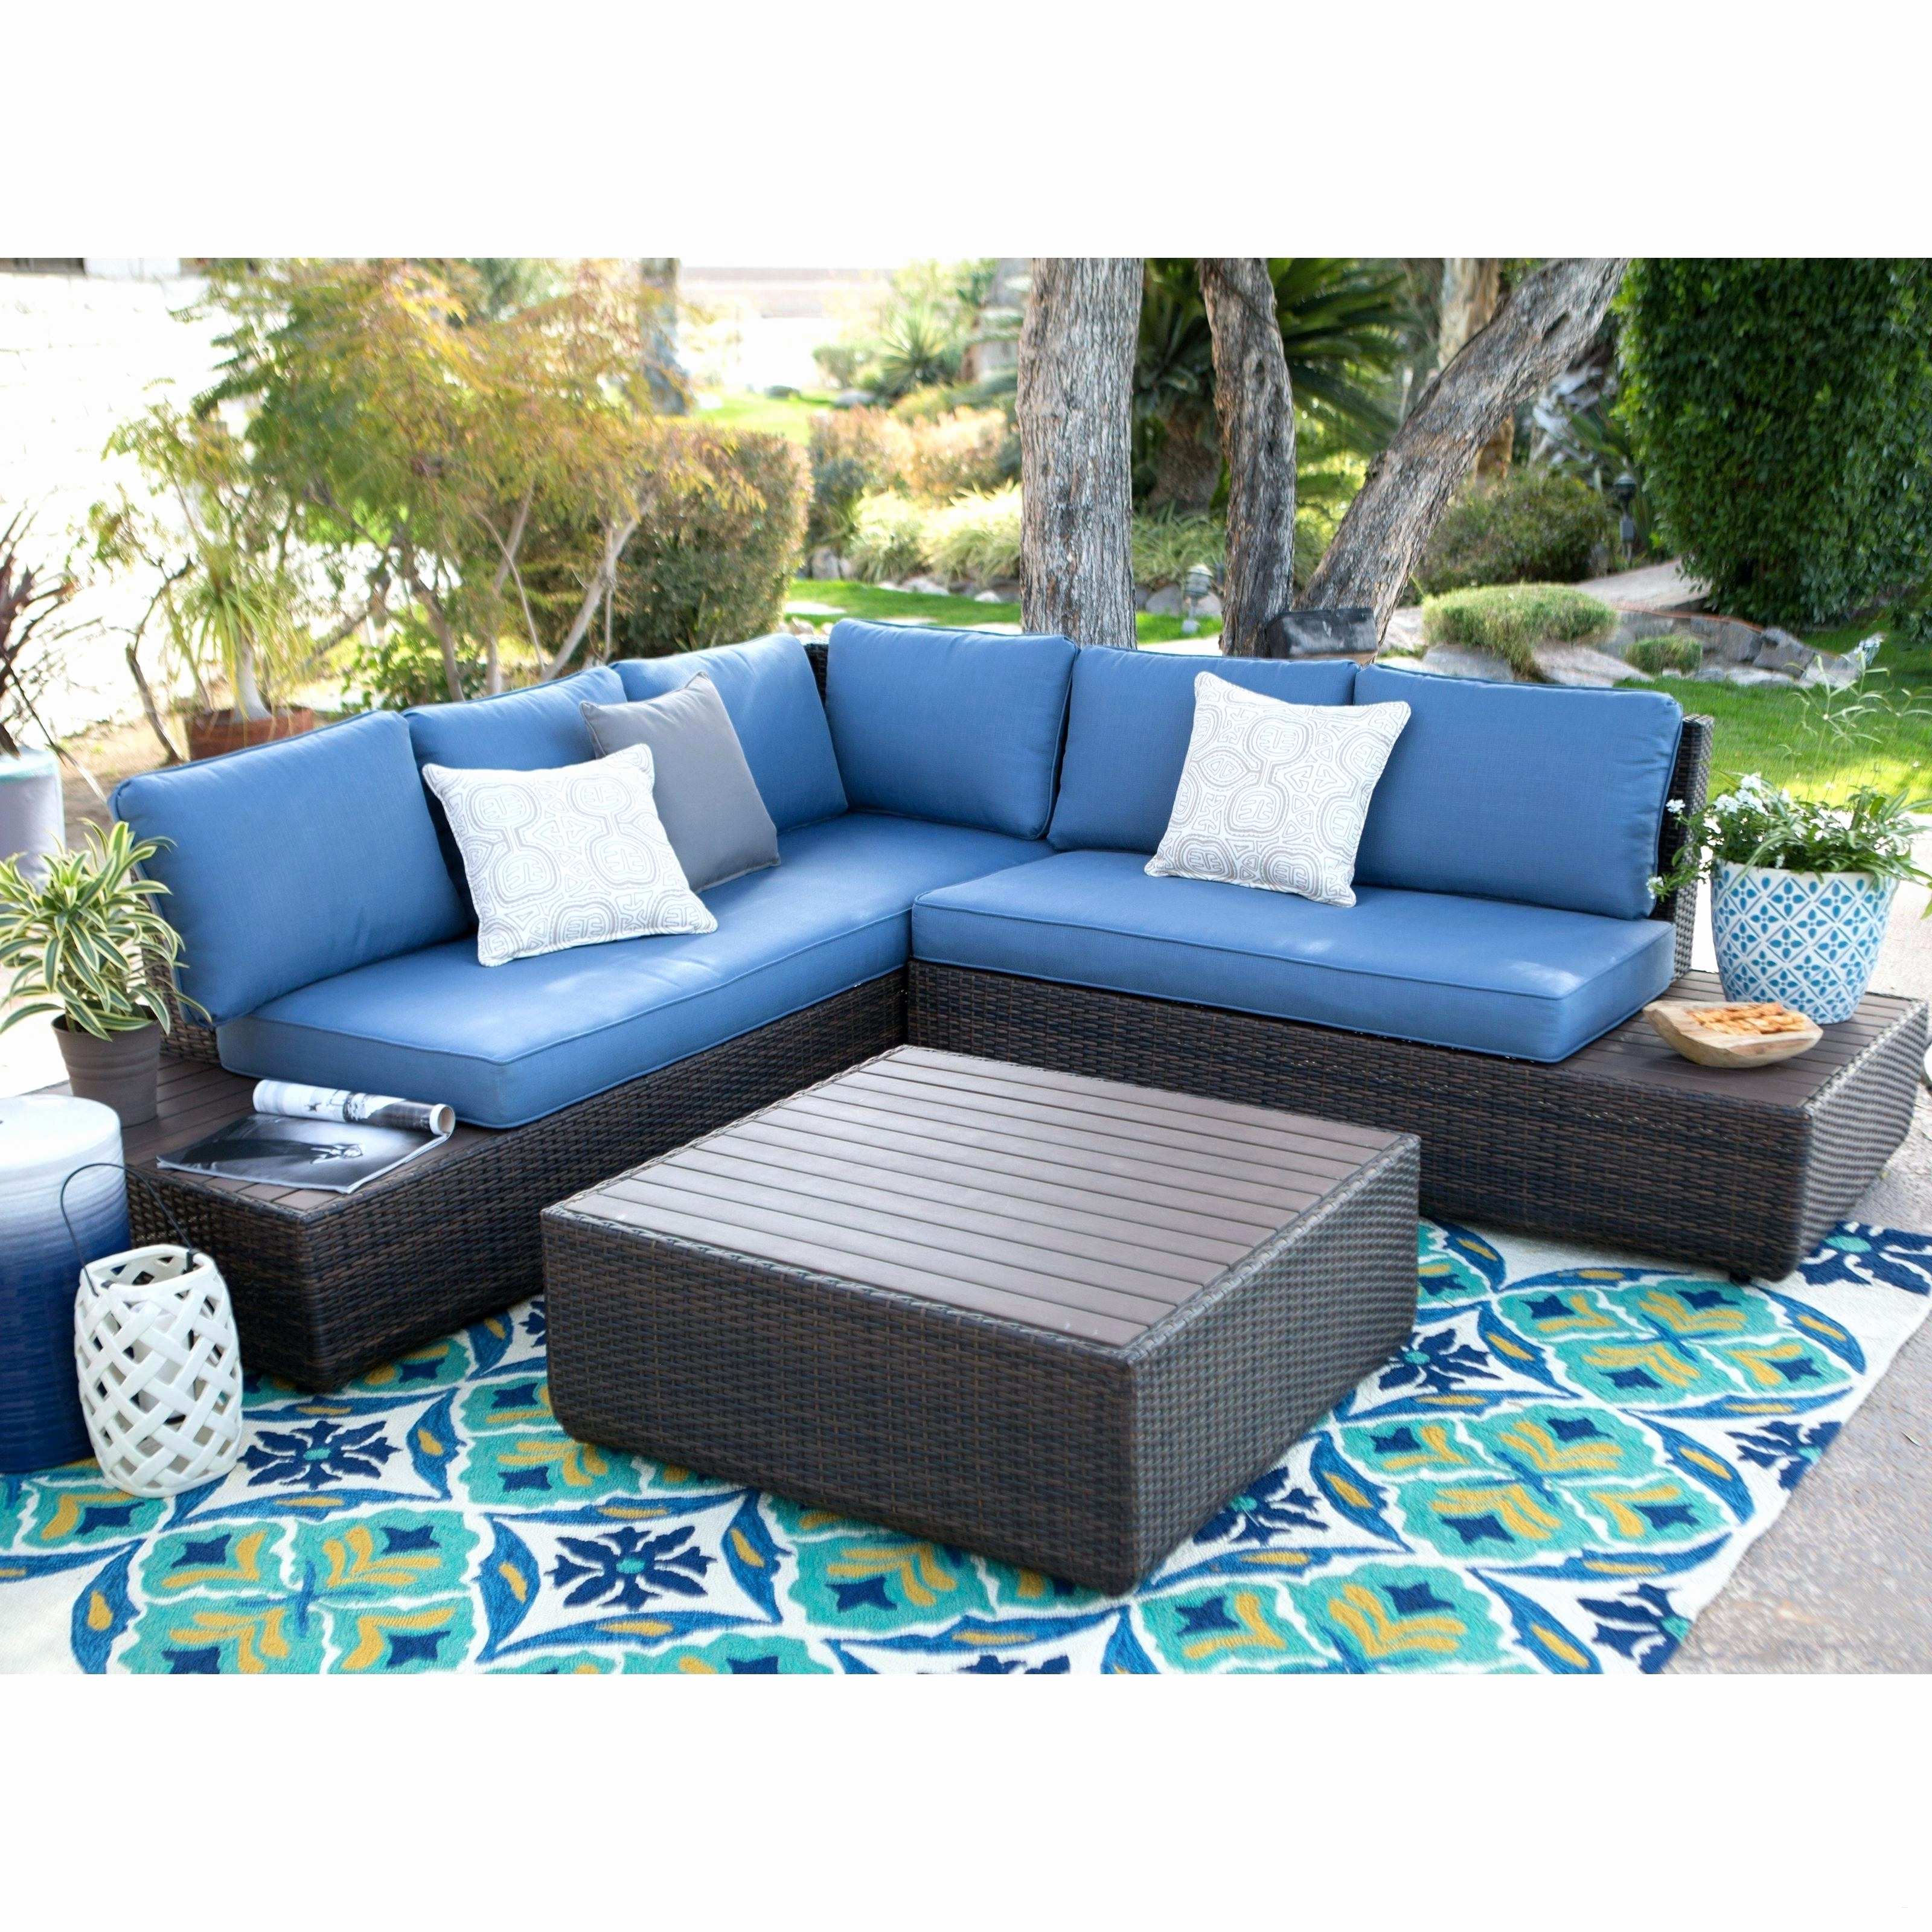 Target Outdoor Furniture Elegant 29 Lovely Conversation Sets Patio Pertaining To Well Known Target Patio Furniture Conversation Sets (View 12 of 20)